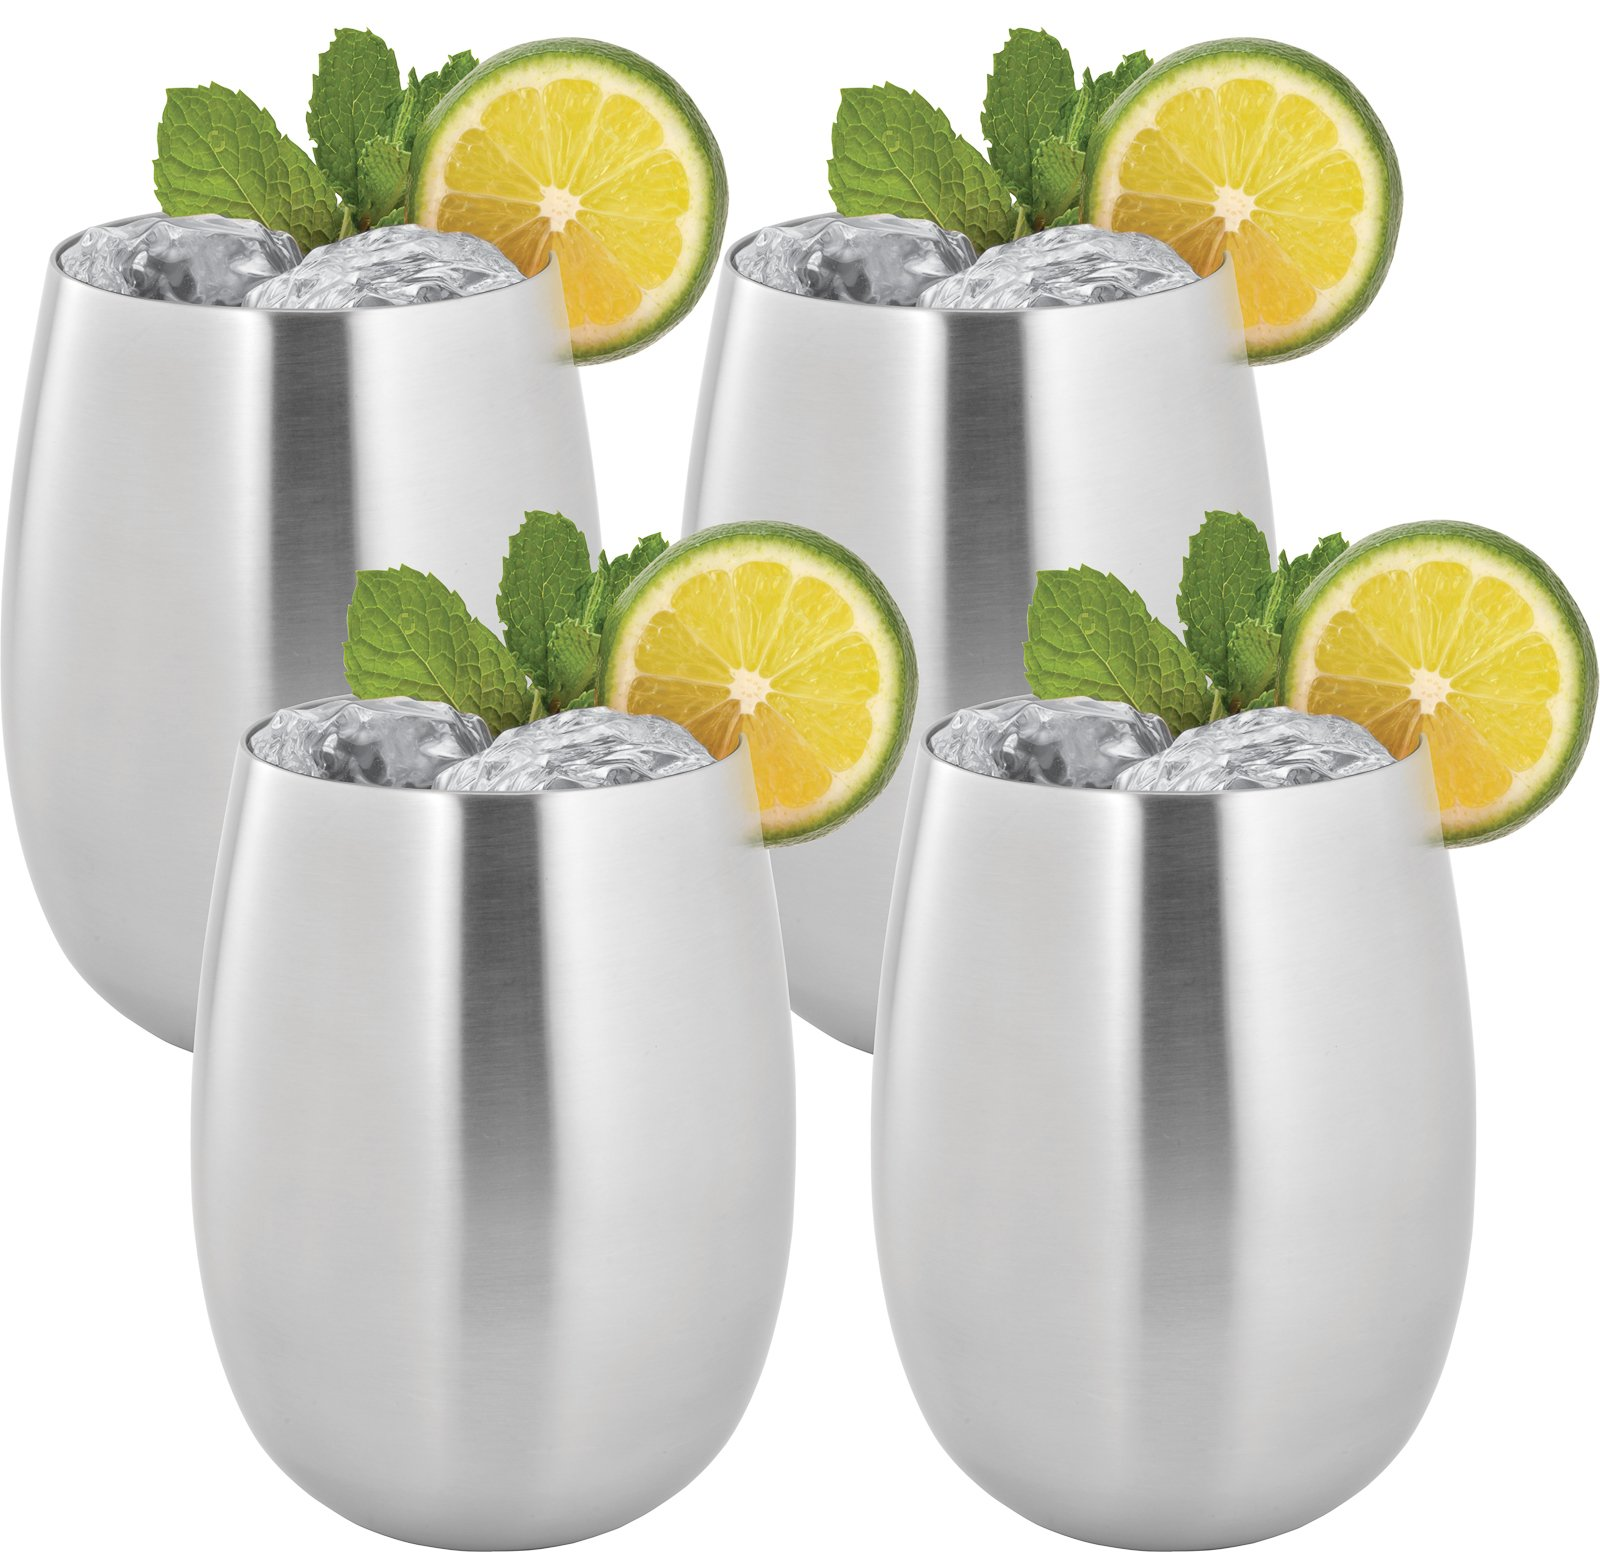 Estilo Stainless Steel Stemless Wine and Cocktail Cups, Double Walled, Unbreakable, 16-ounce- Set 4